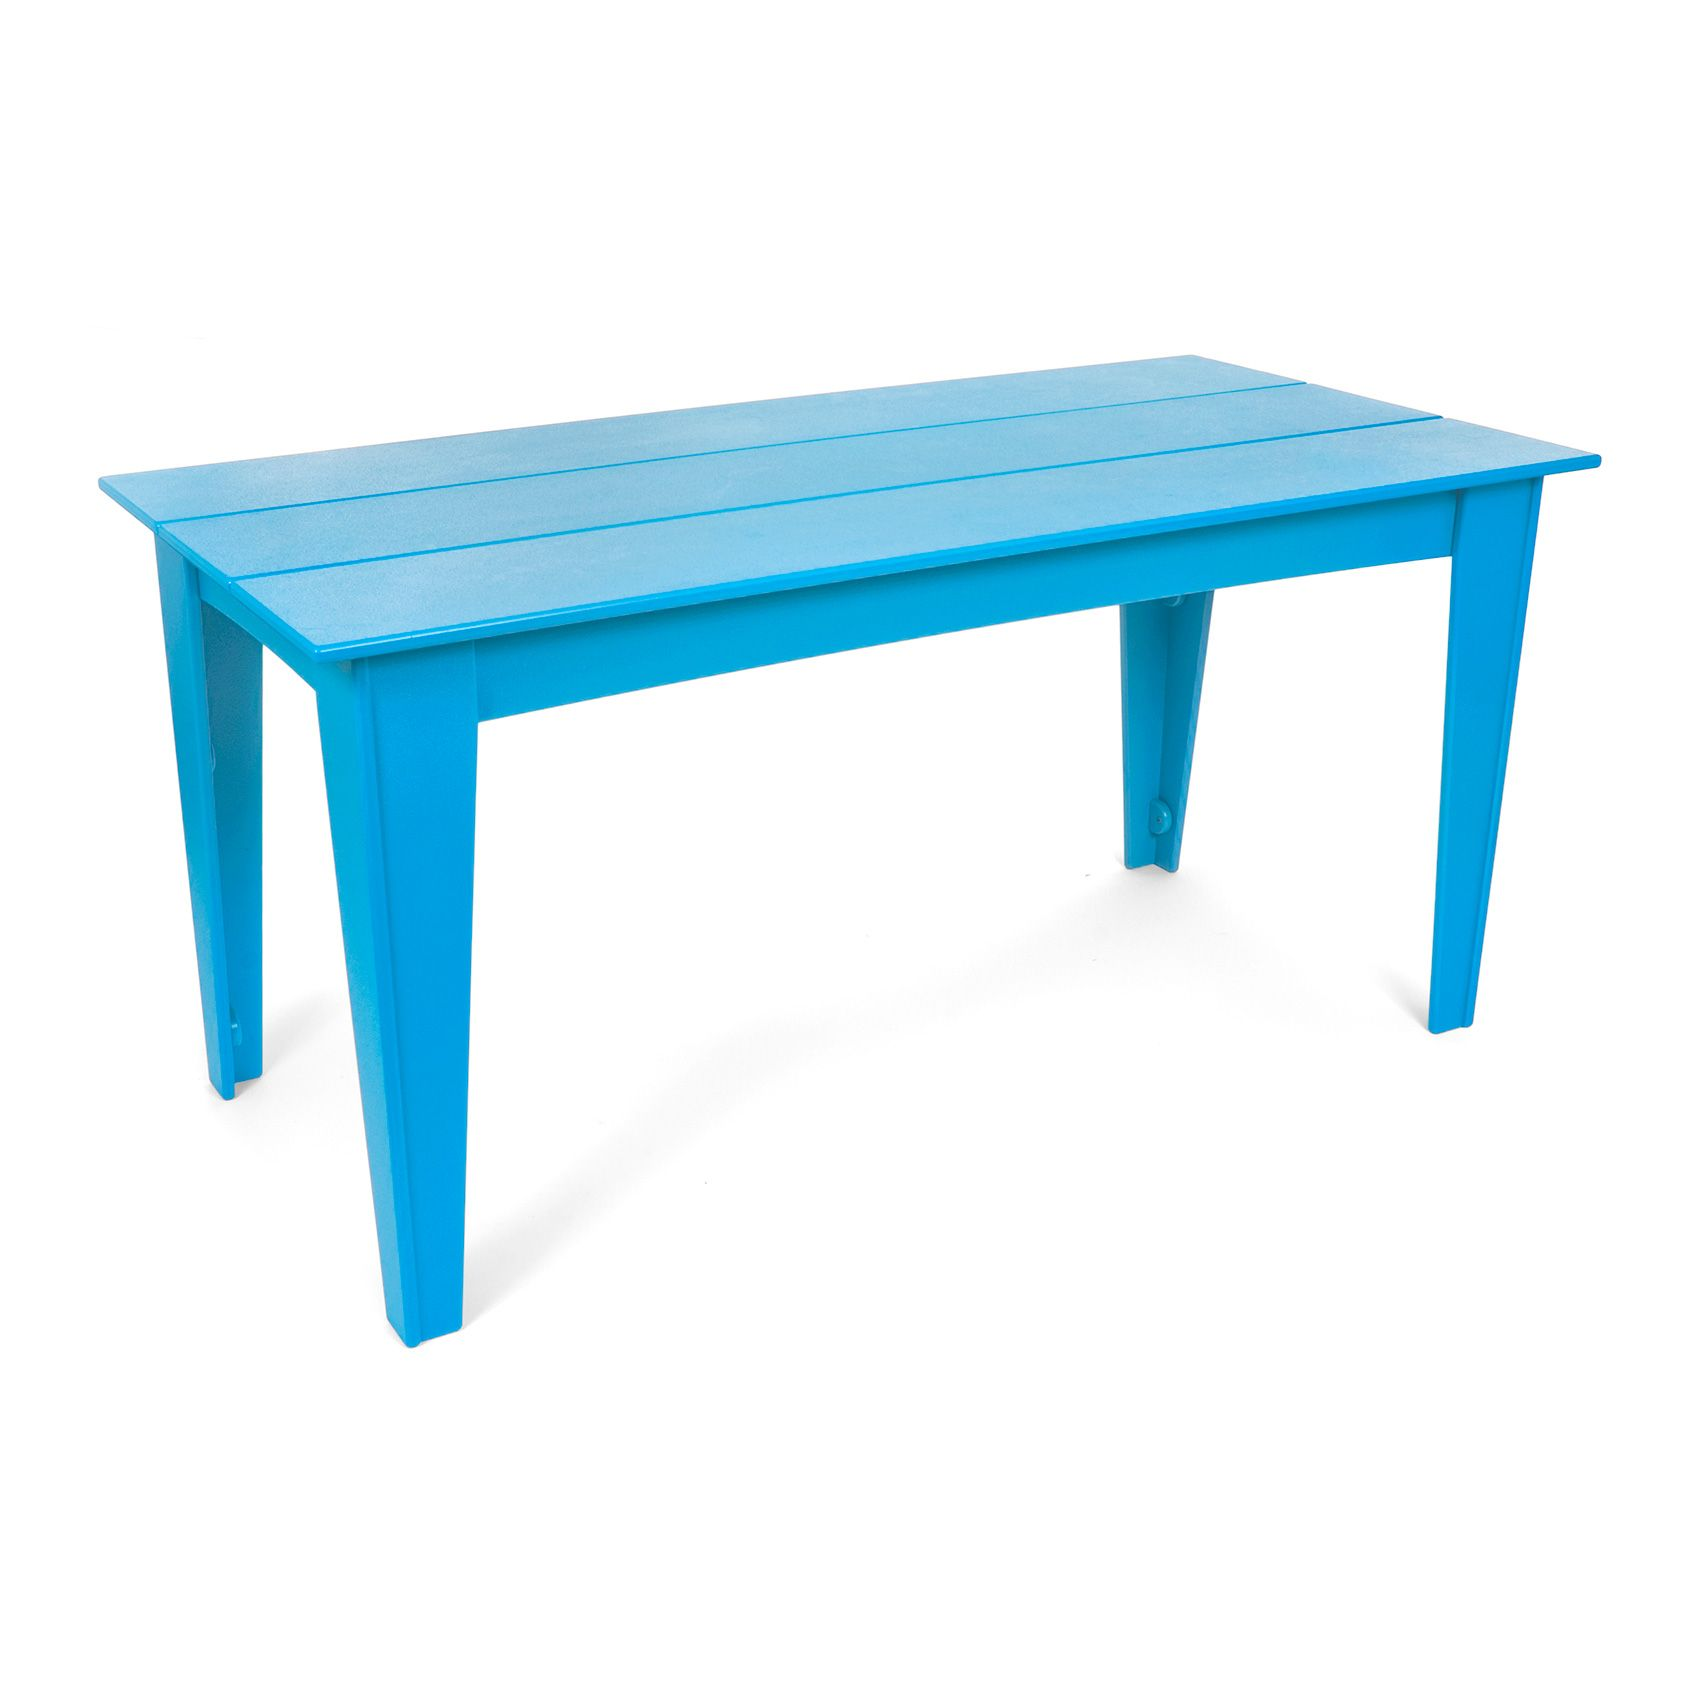 Alfresco Dining Table 72 Inch Dining Table Outdoor Dining